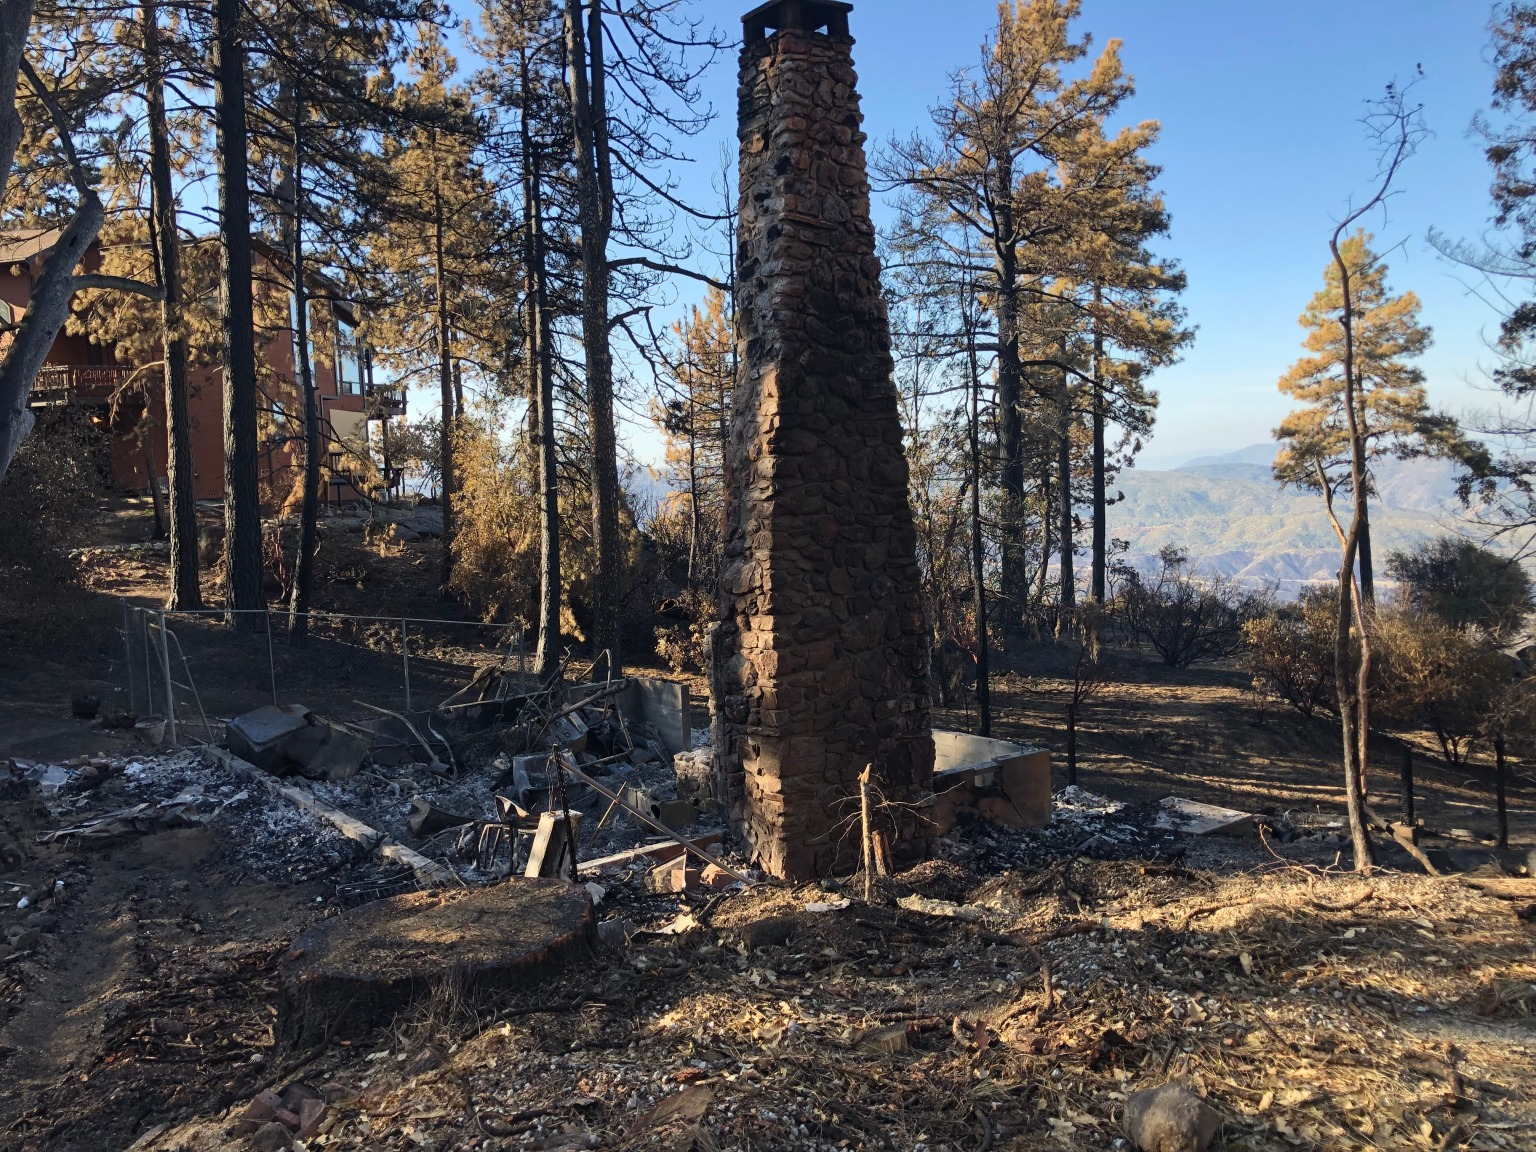 Wildfire Risks Prompt Prohibitions on Camp Fires, Smoking in National Forest